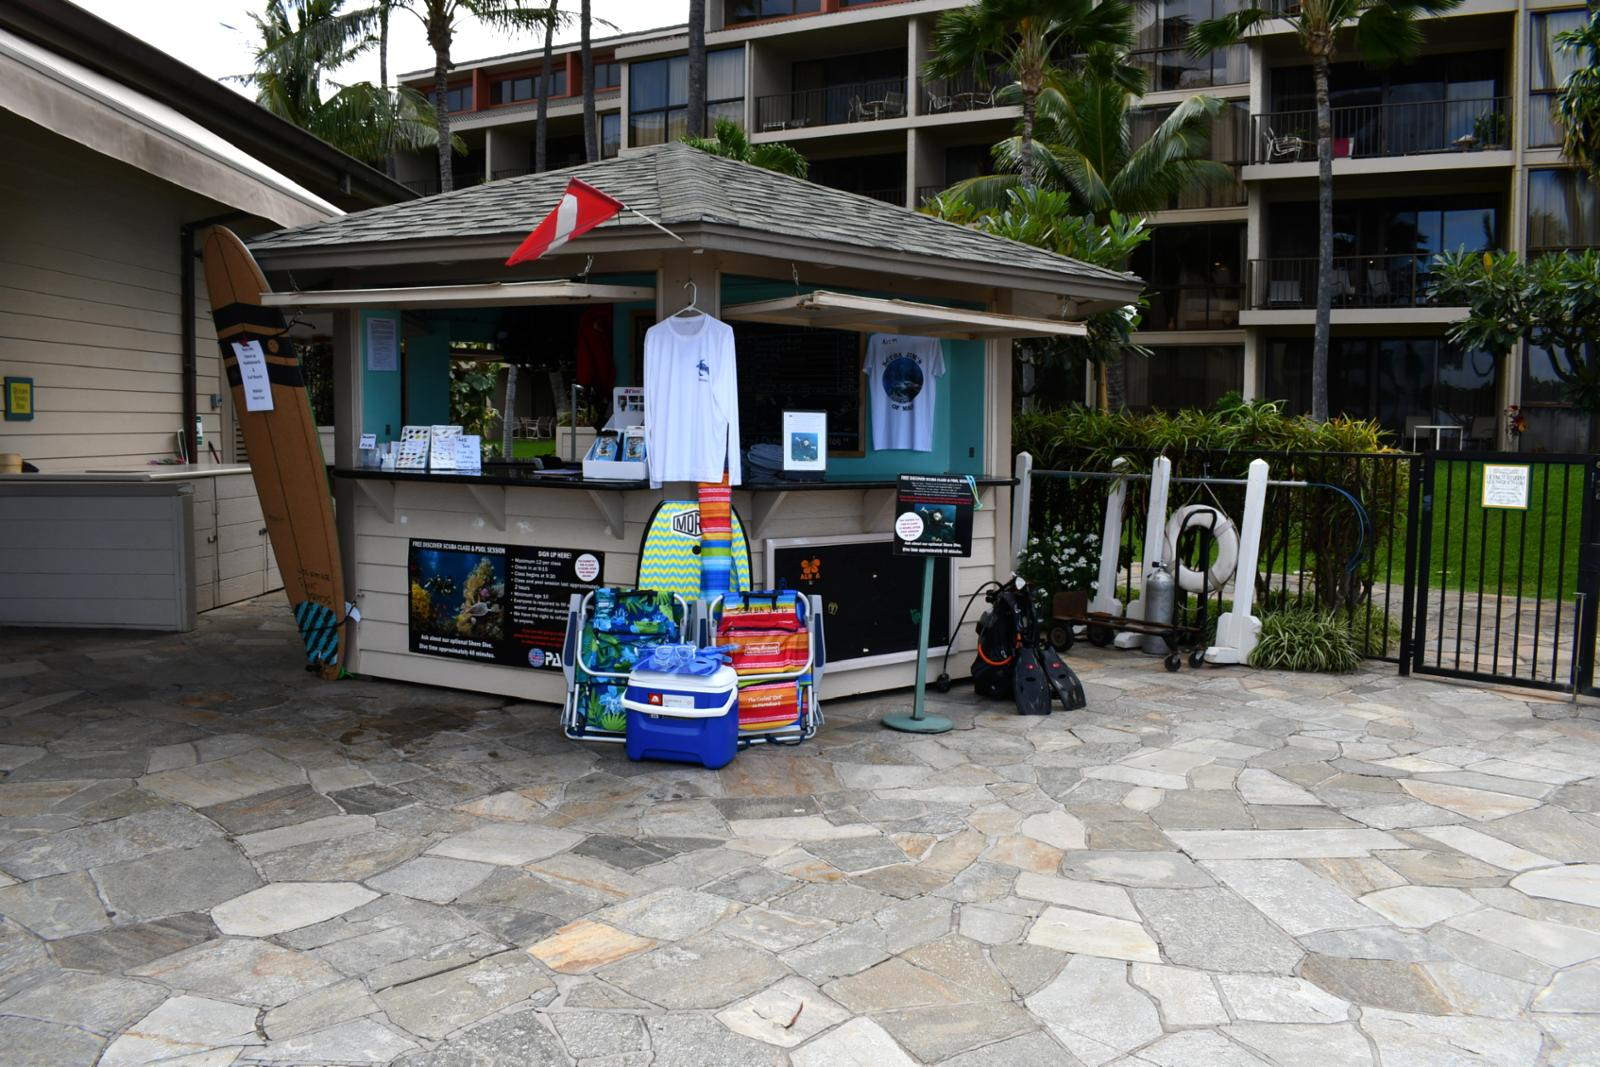 Beach activity stand should you like to surf!